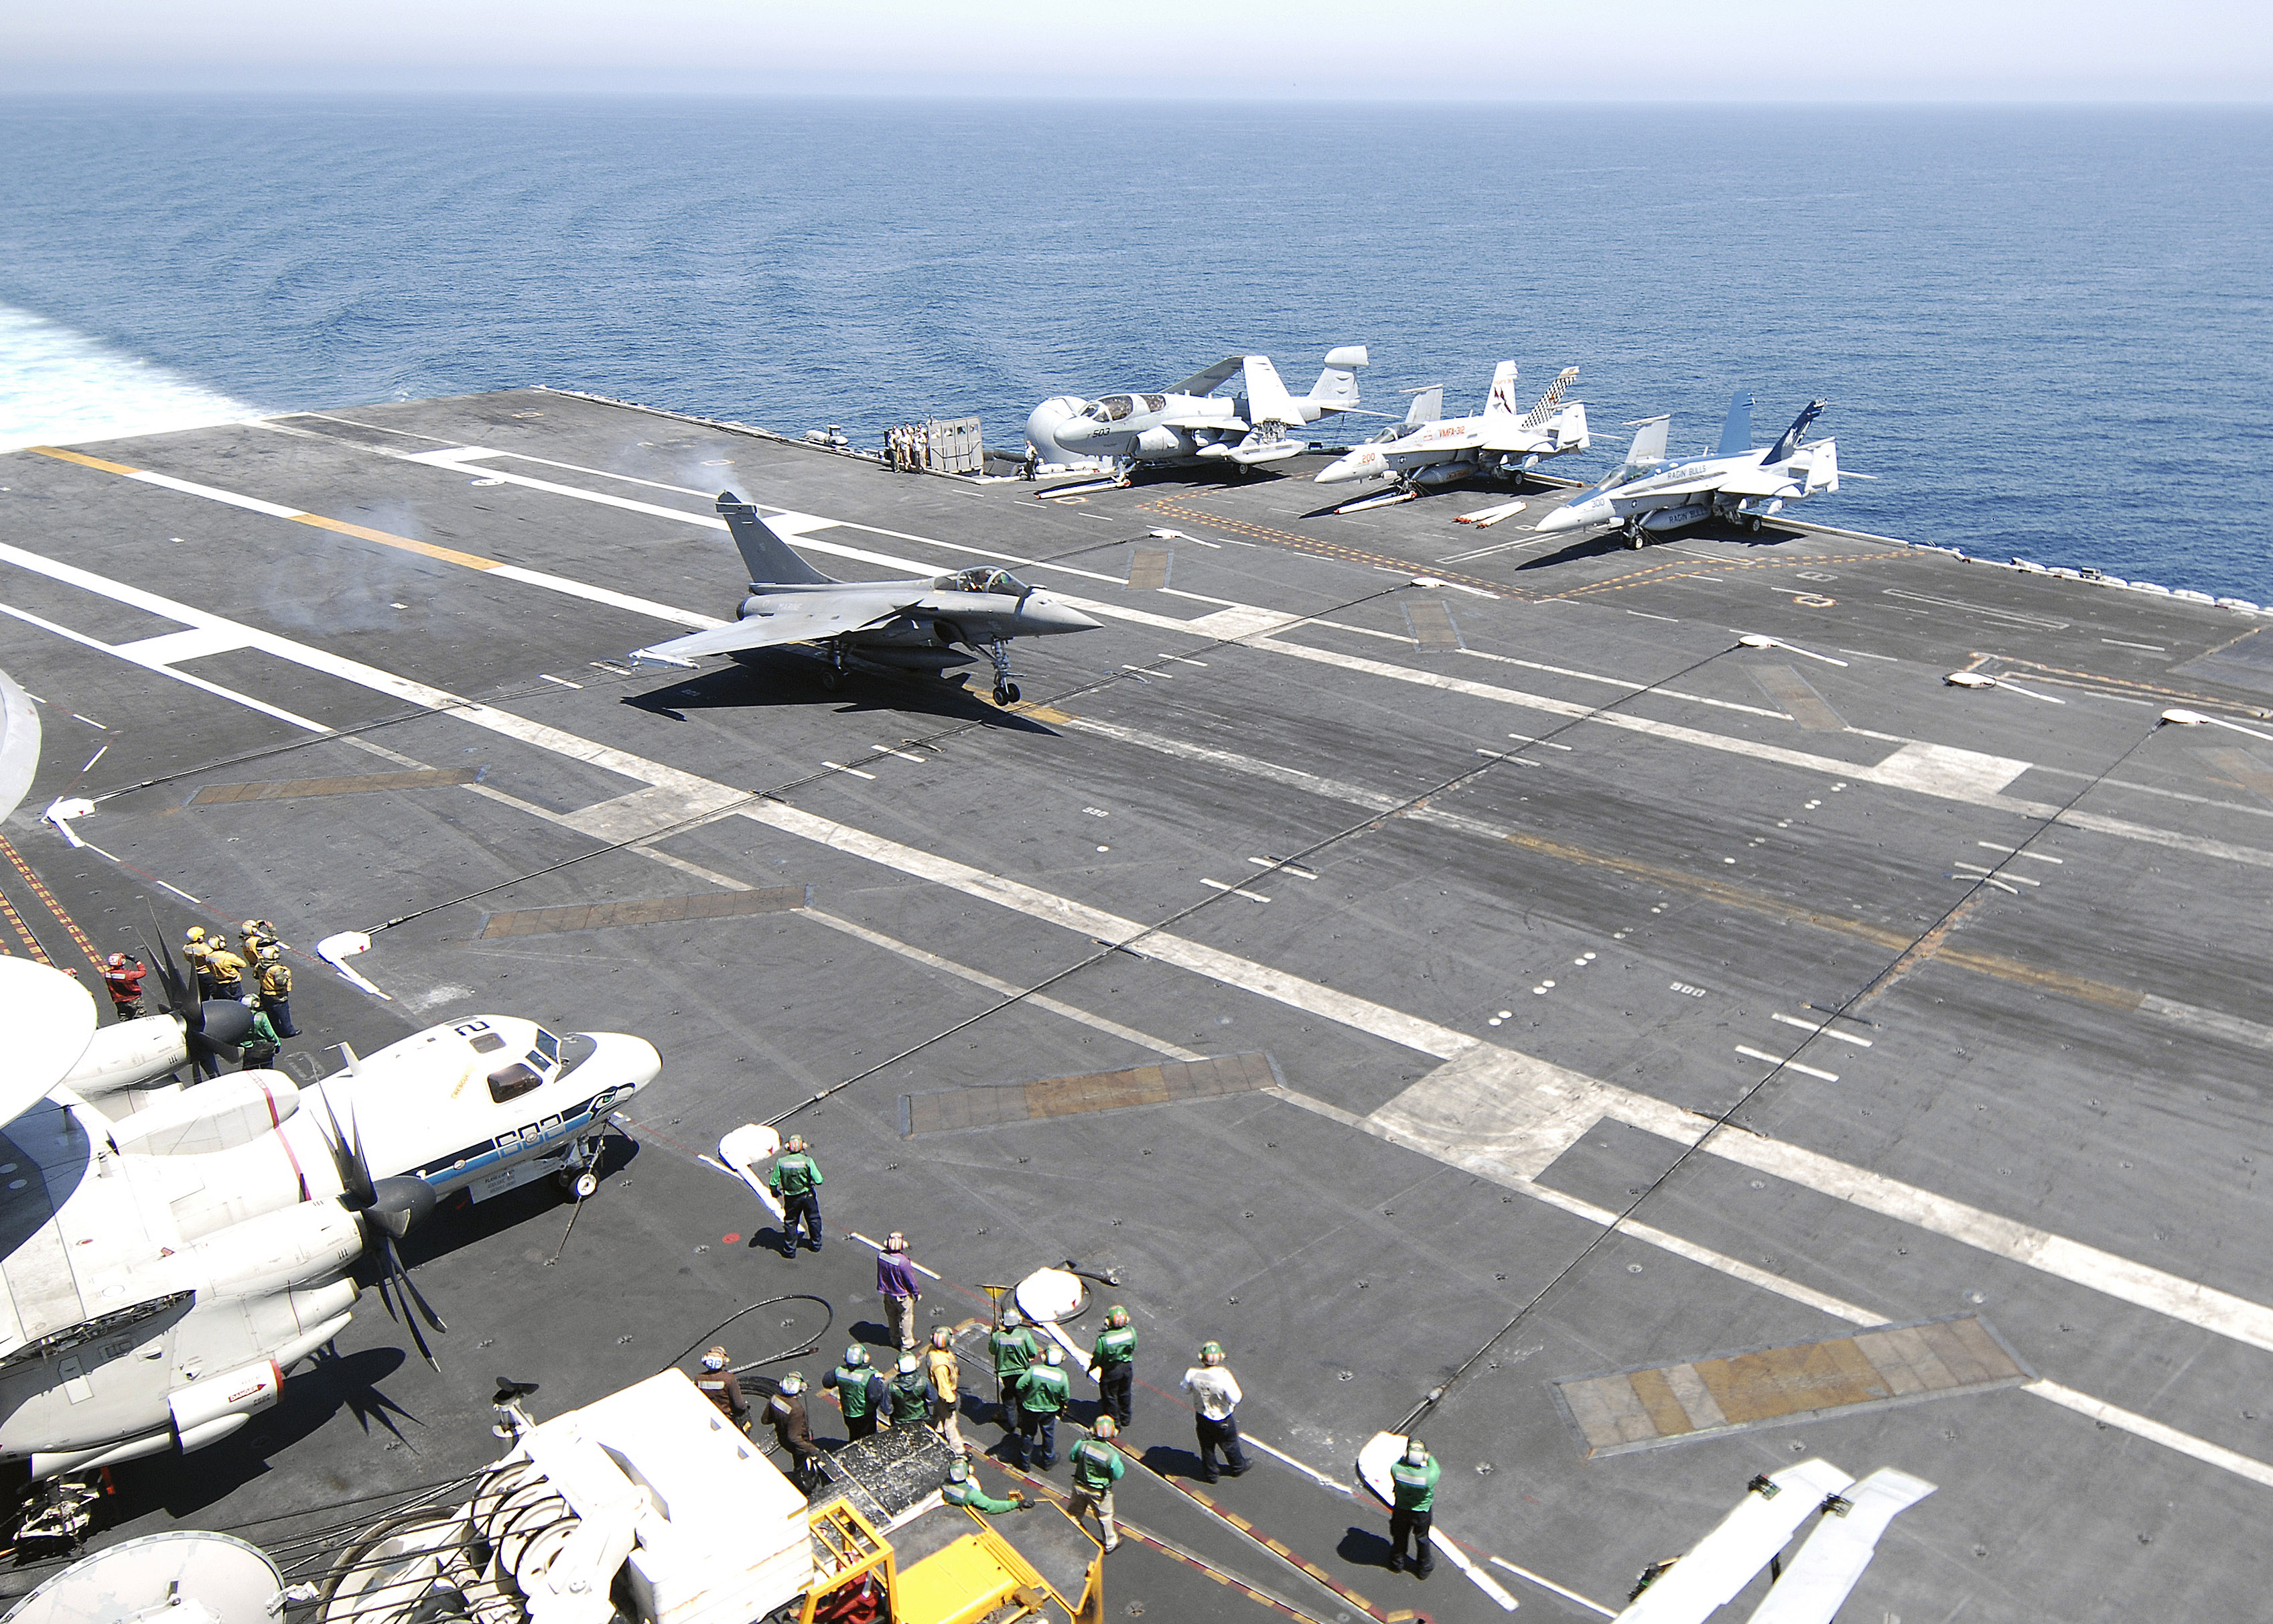 http://upload.wikimedia.org/wikipedia/commons/e/e4/US_Navy_100604-N-2921I-041_A_French_navy_Rafale_F-3_fighter_aircraft_lands_aboard_the_Nimitz-class_aircraft_carrier_USS_Harry_S._Truman_(CVN_75).jpg